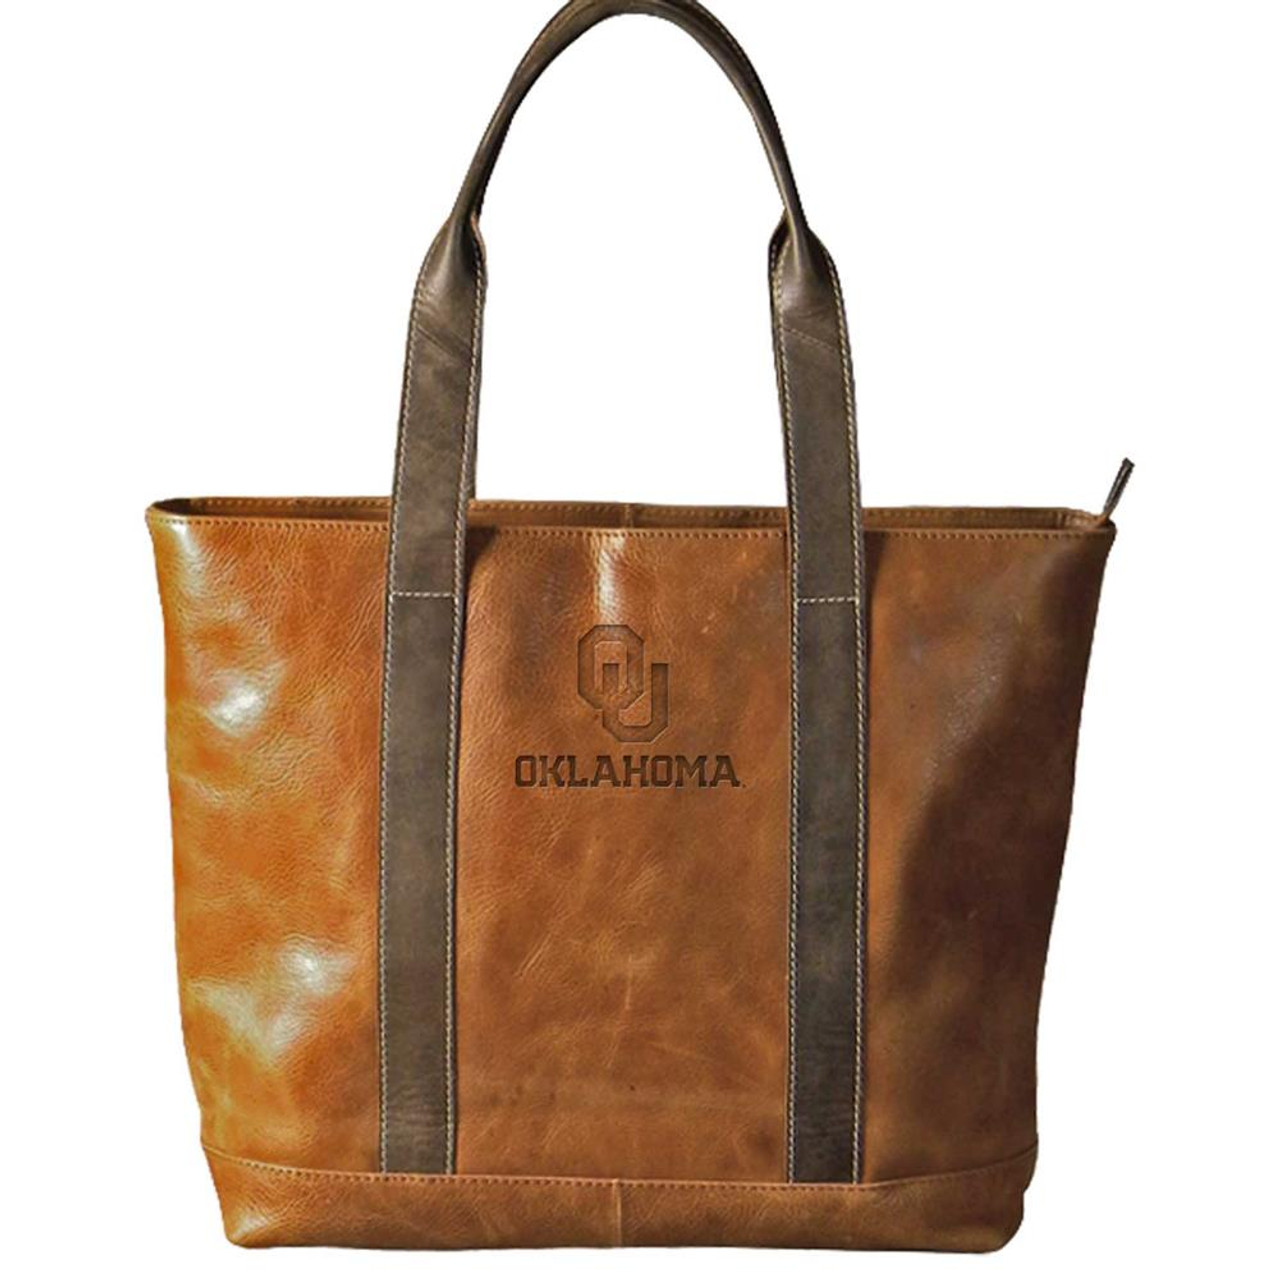 University of Oklahoma Sooners Tote Two-Tone Tan Leather Tote Bag